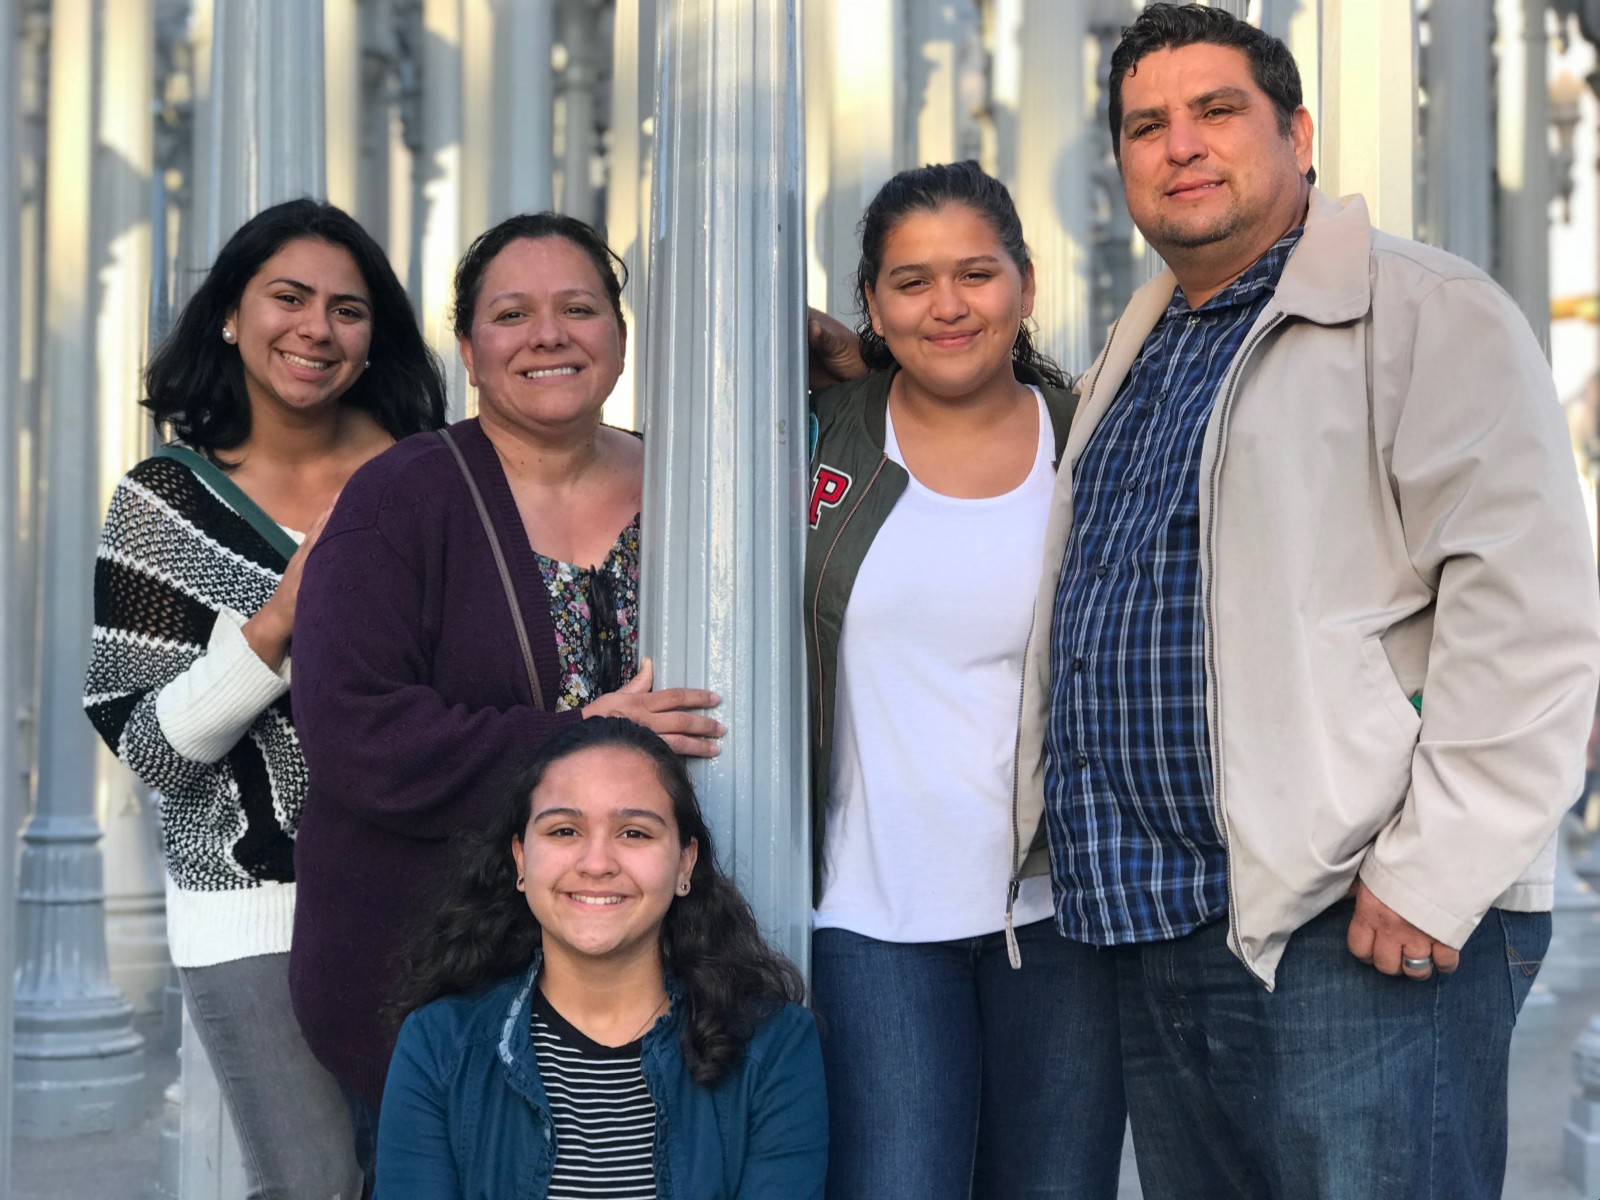 Kathleen Parra (far left) with family members (from left to right) Alicia, Evelyn, Angelina and Rigoberto. Kathleen will become the first in her family to graduate from college in spring 2021.